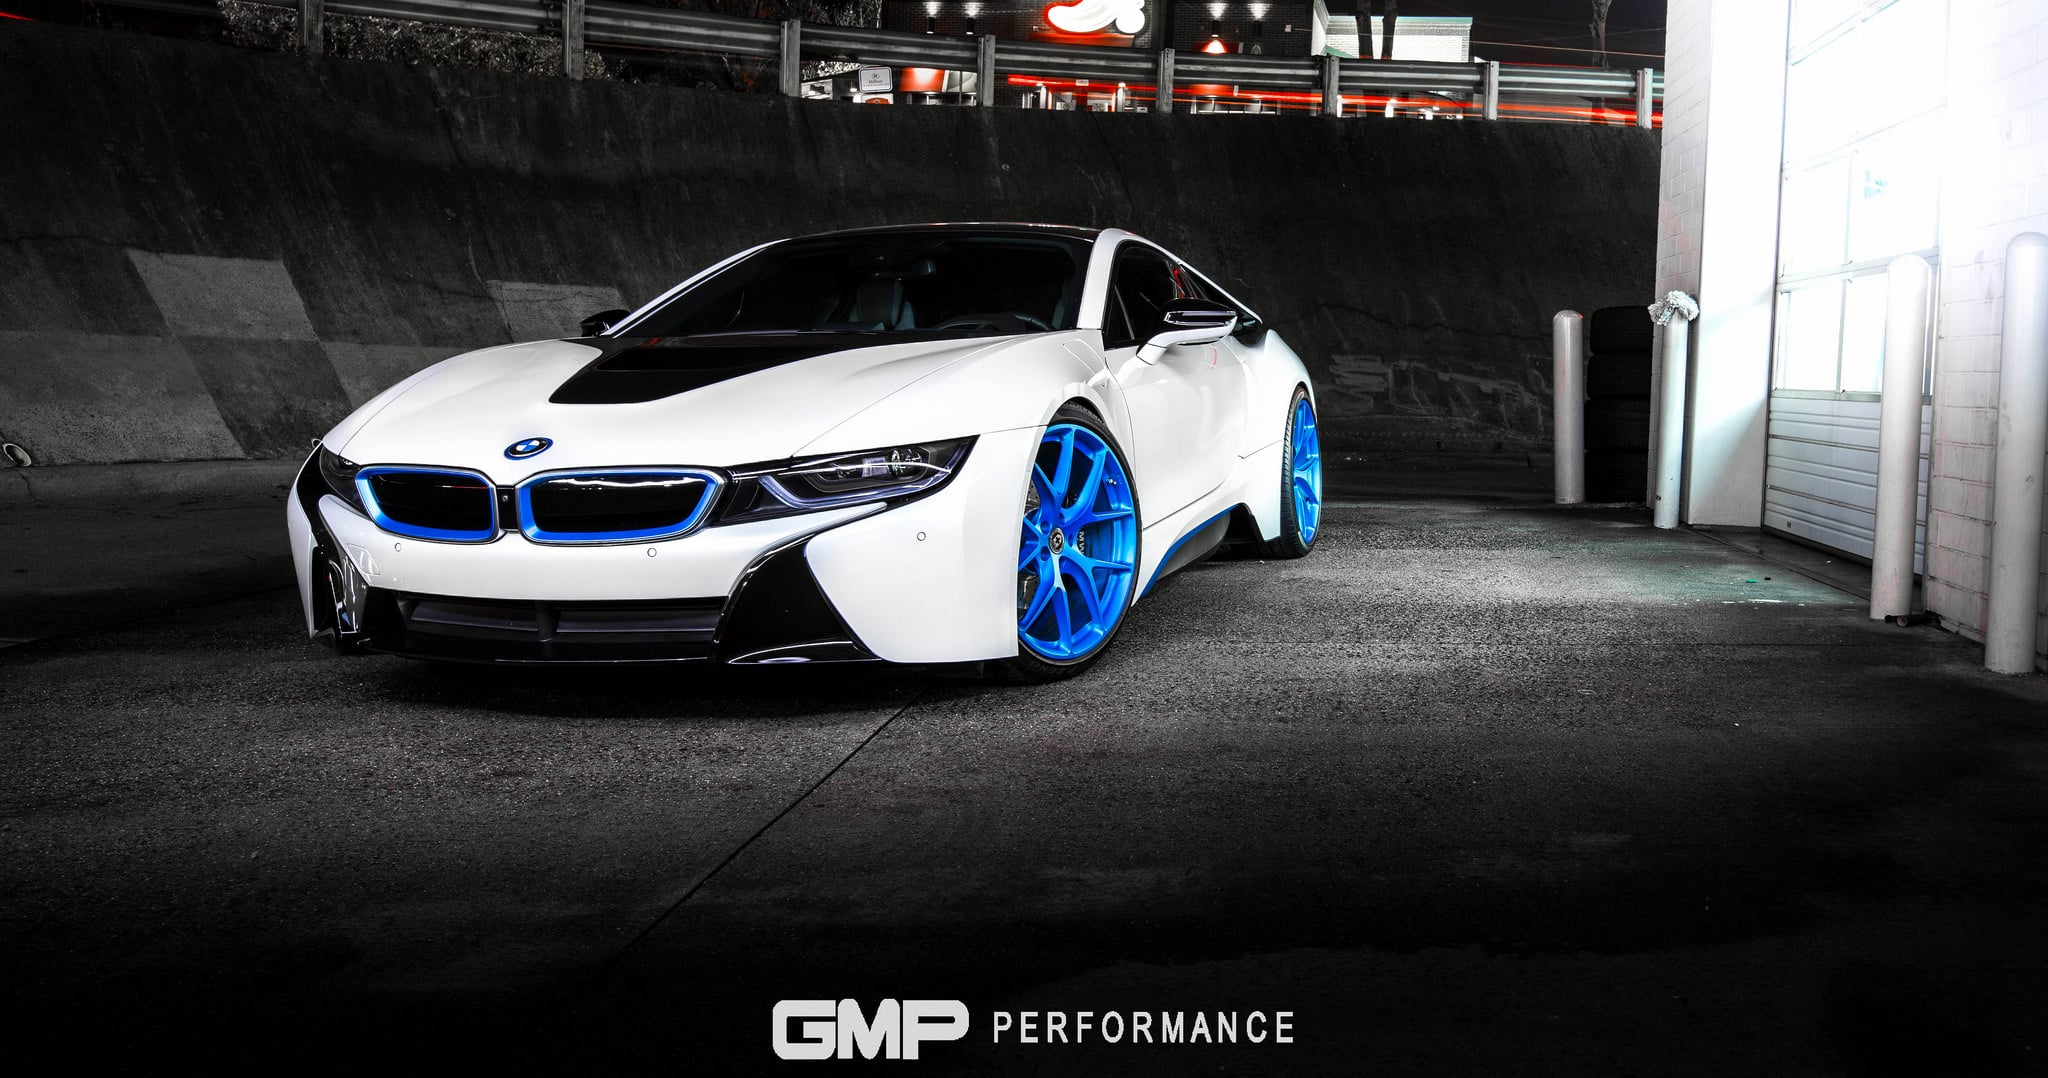 16 Bmw I8 Wallpapers Hd High Quality Download